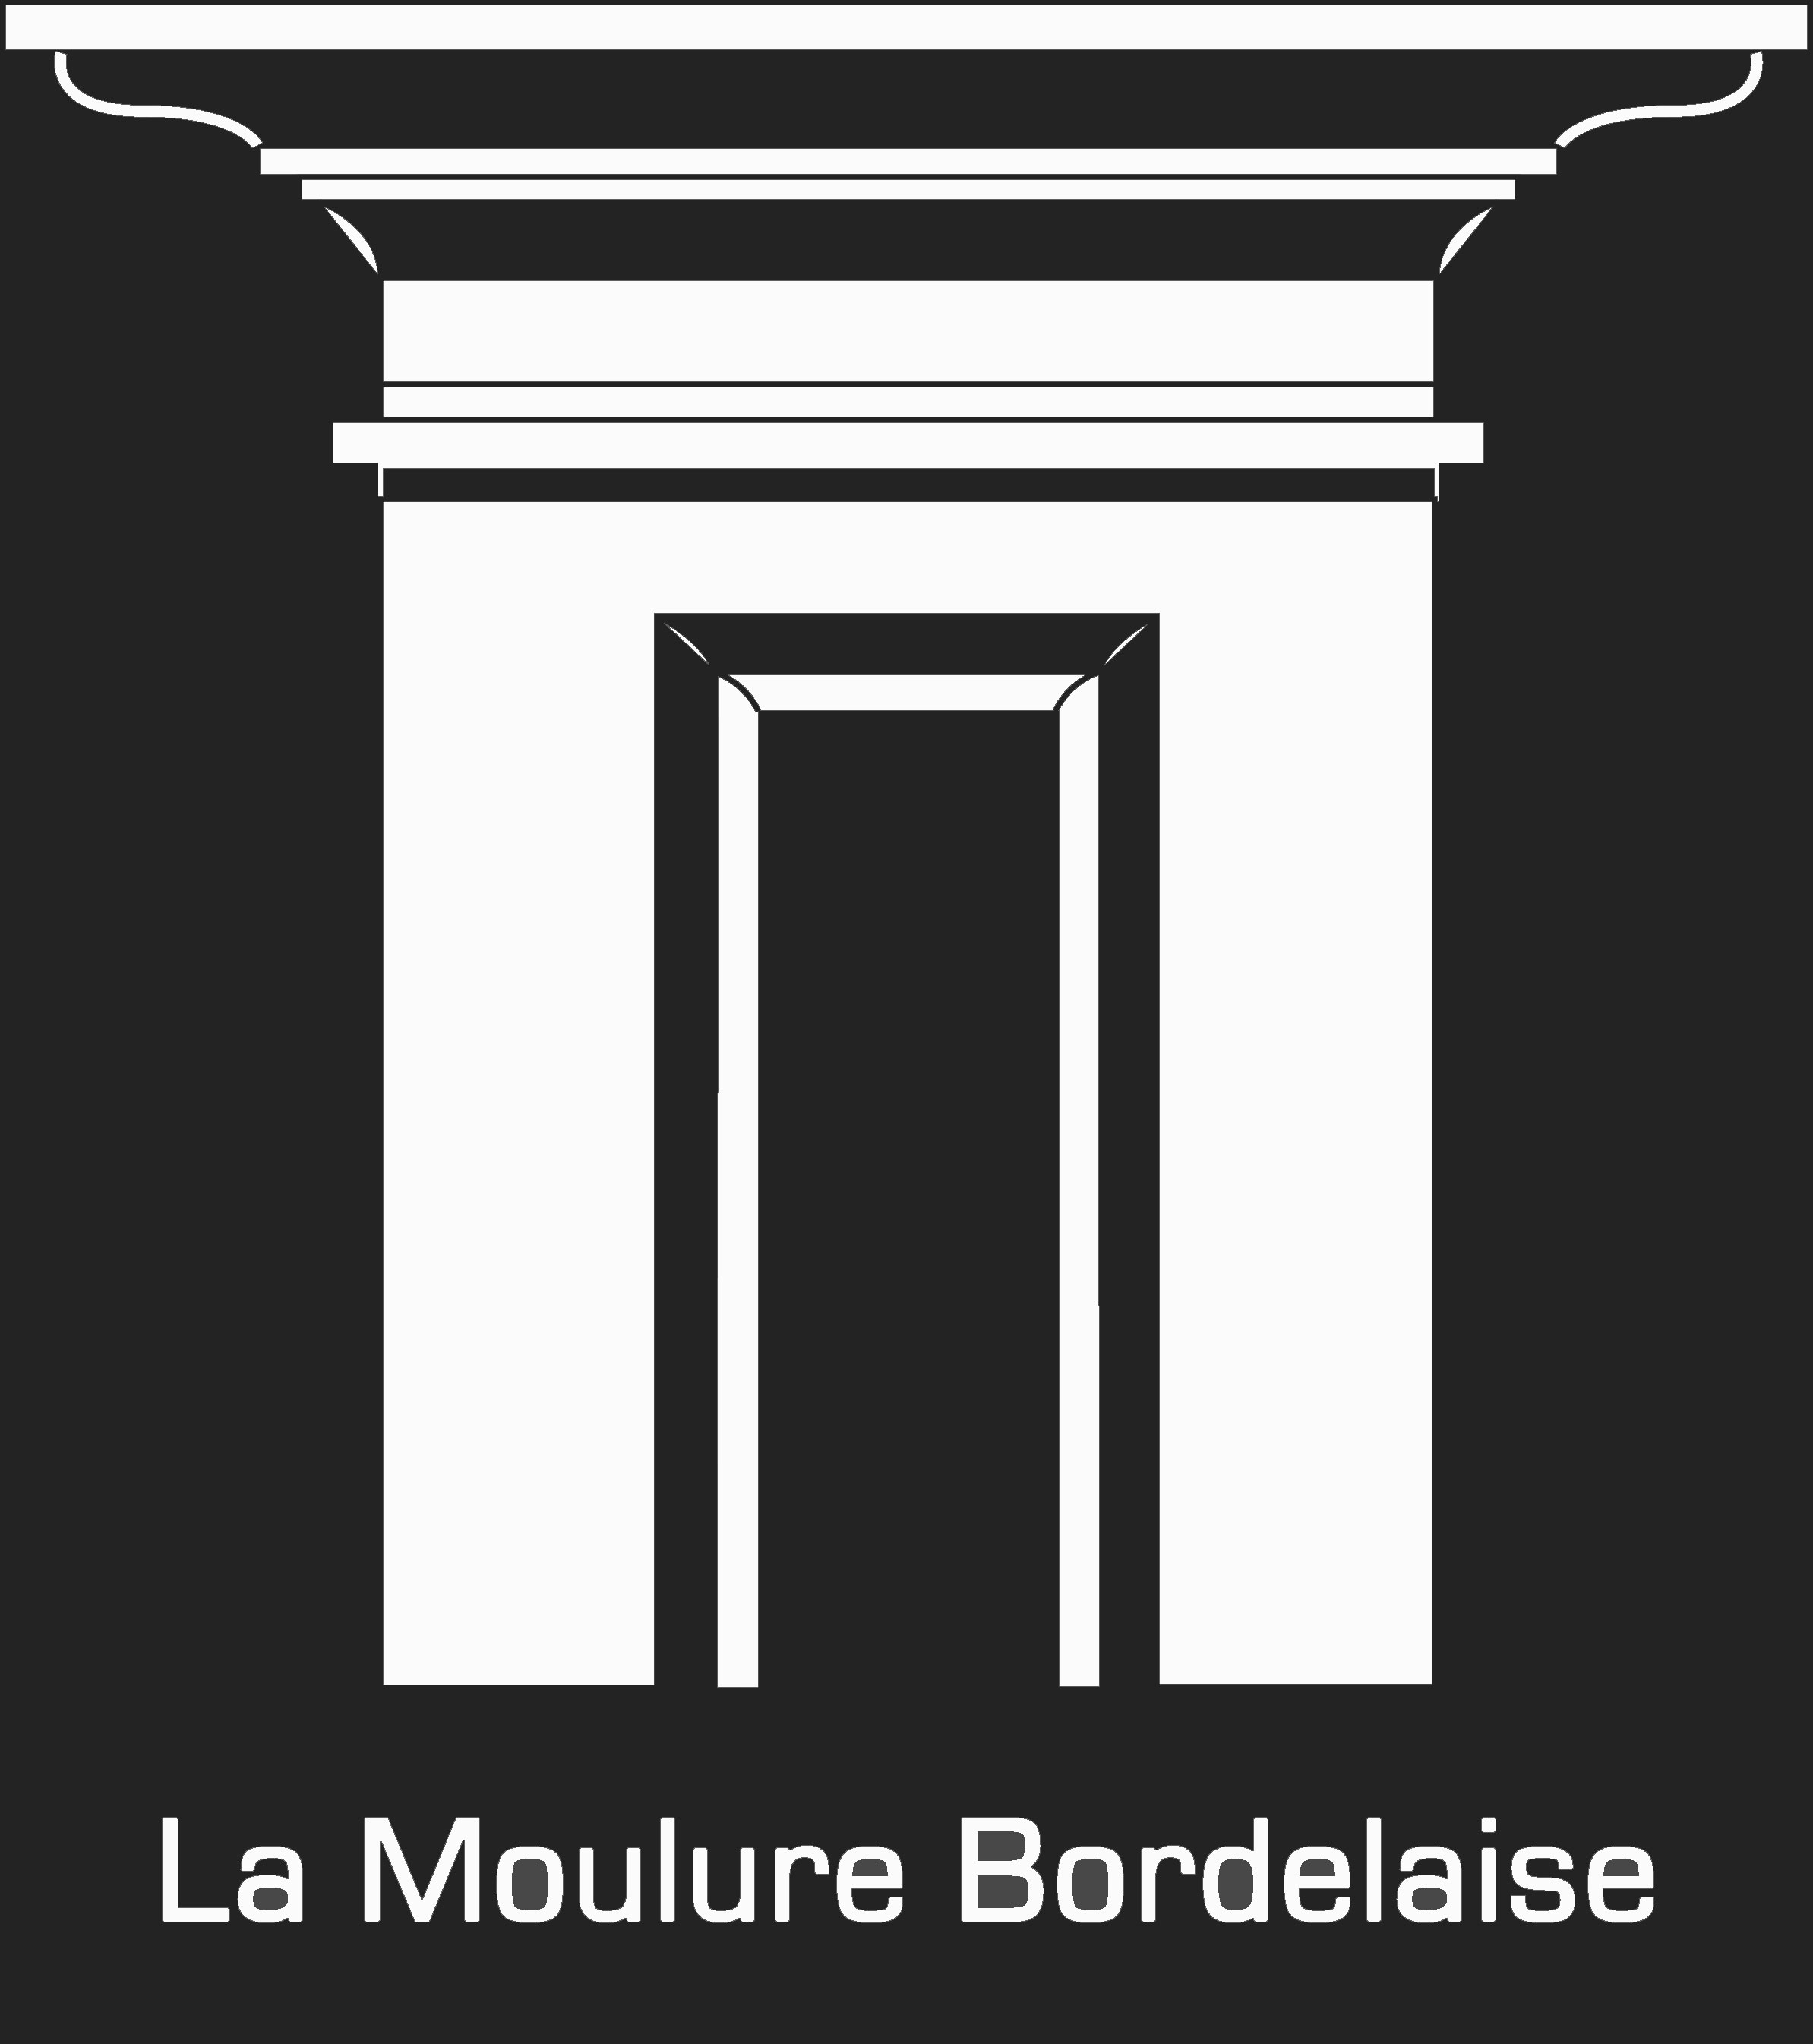 Logo, La Moulure Bordelaise